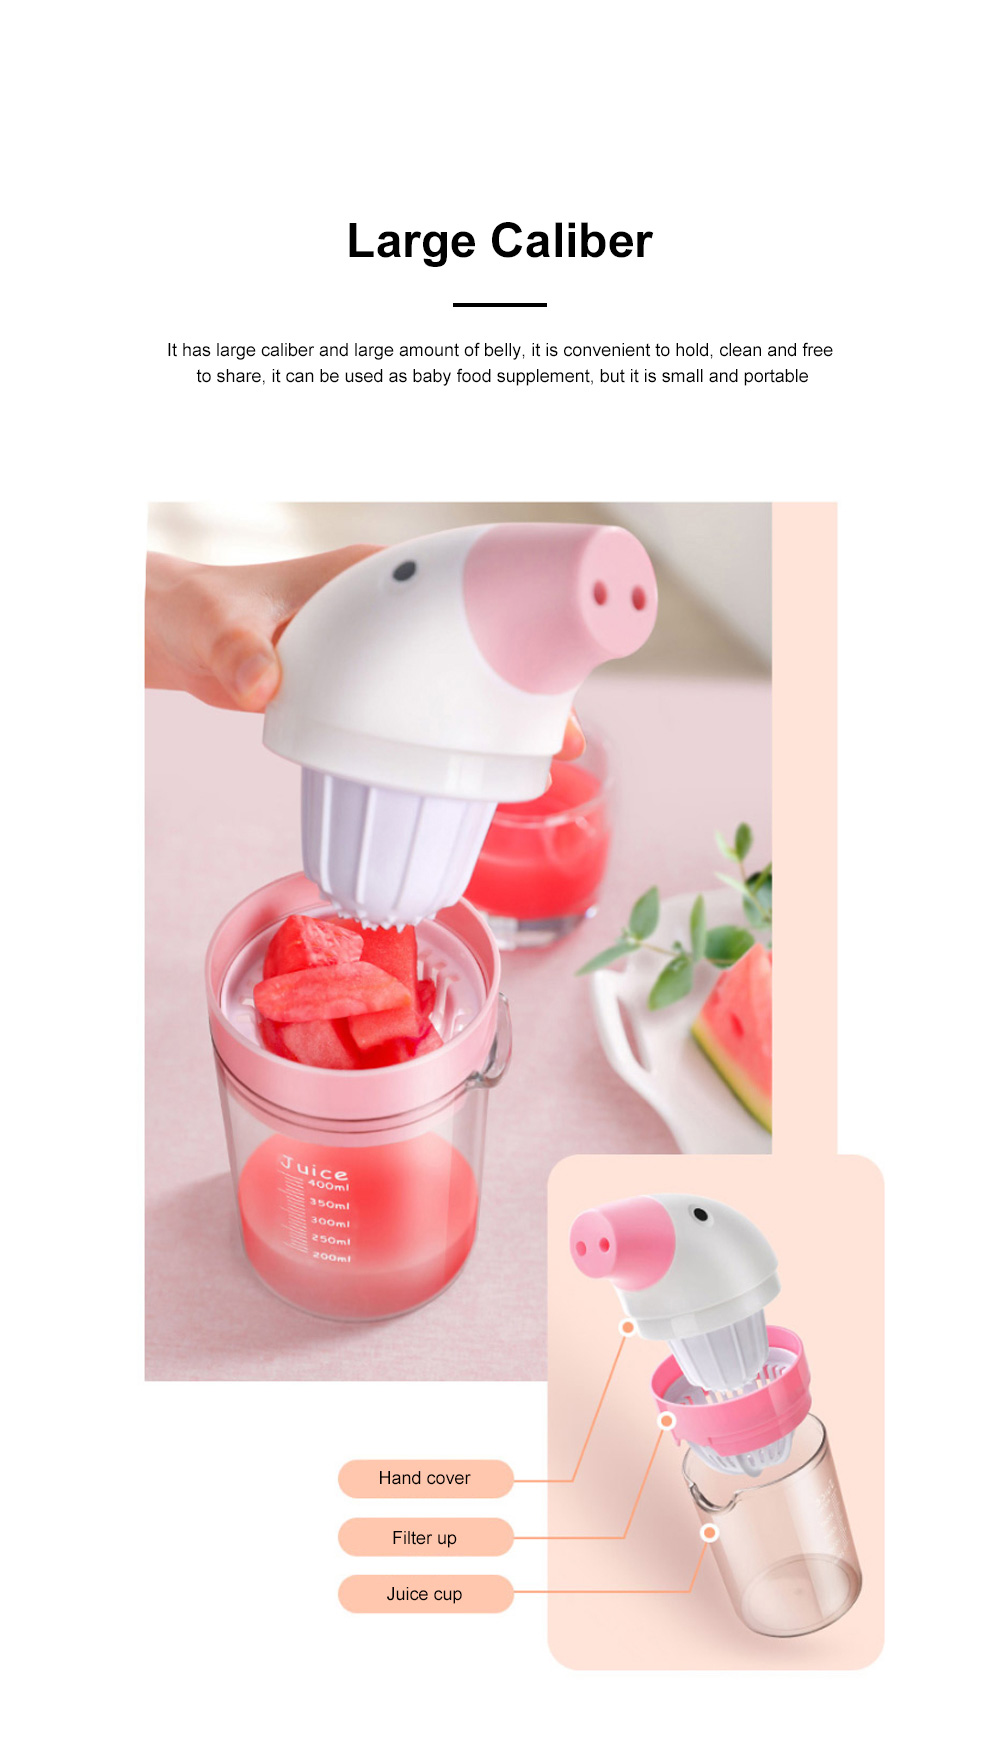 Simple Manual Juicer Cup Small Hand Shake Household Fruit Press Lemon Juice Artifact Hand Squeezed Juice Cup 4